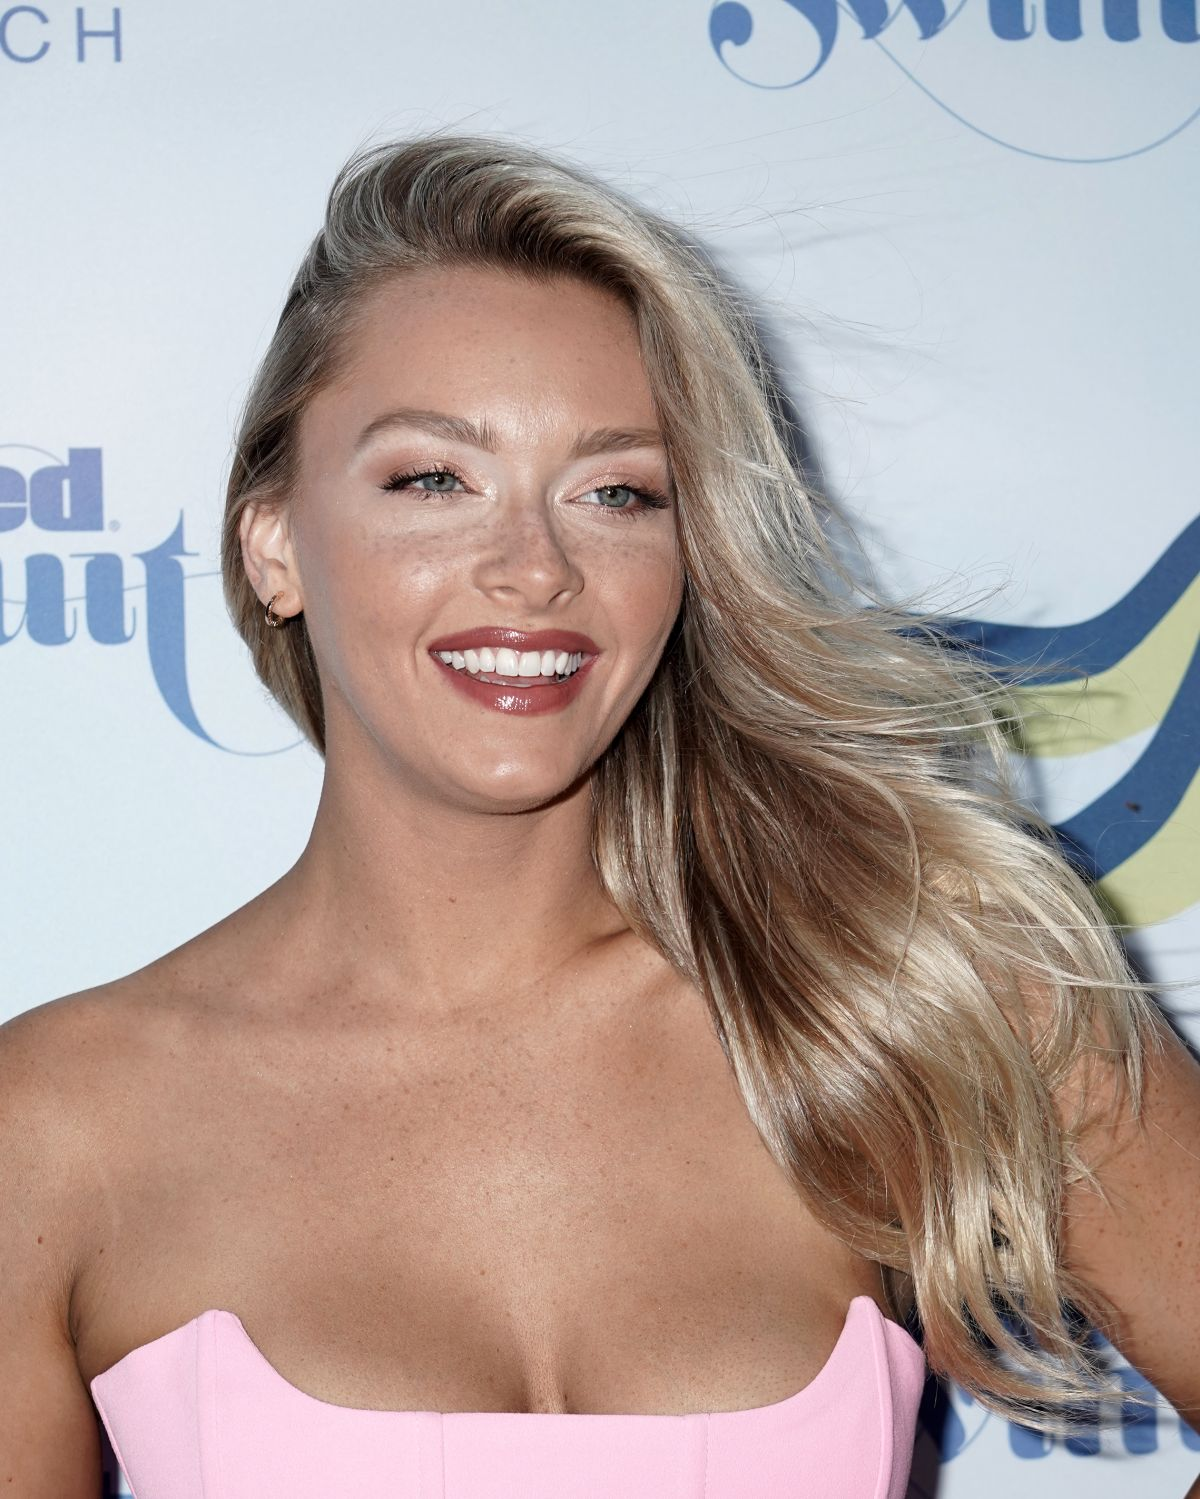 Camille Kostek Publishes Pictures Of Her Si Swimsuit Shoot: Camille Kostek Attends The 2019 Sports Illustrated